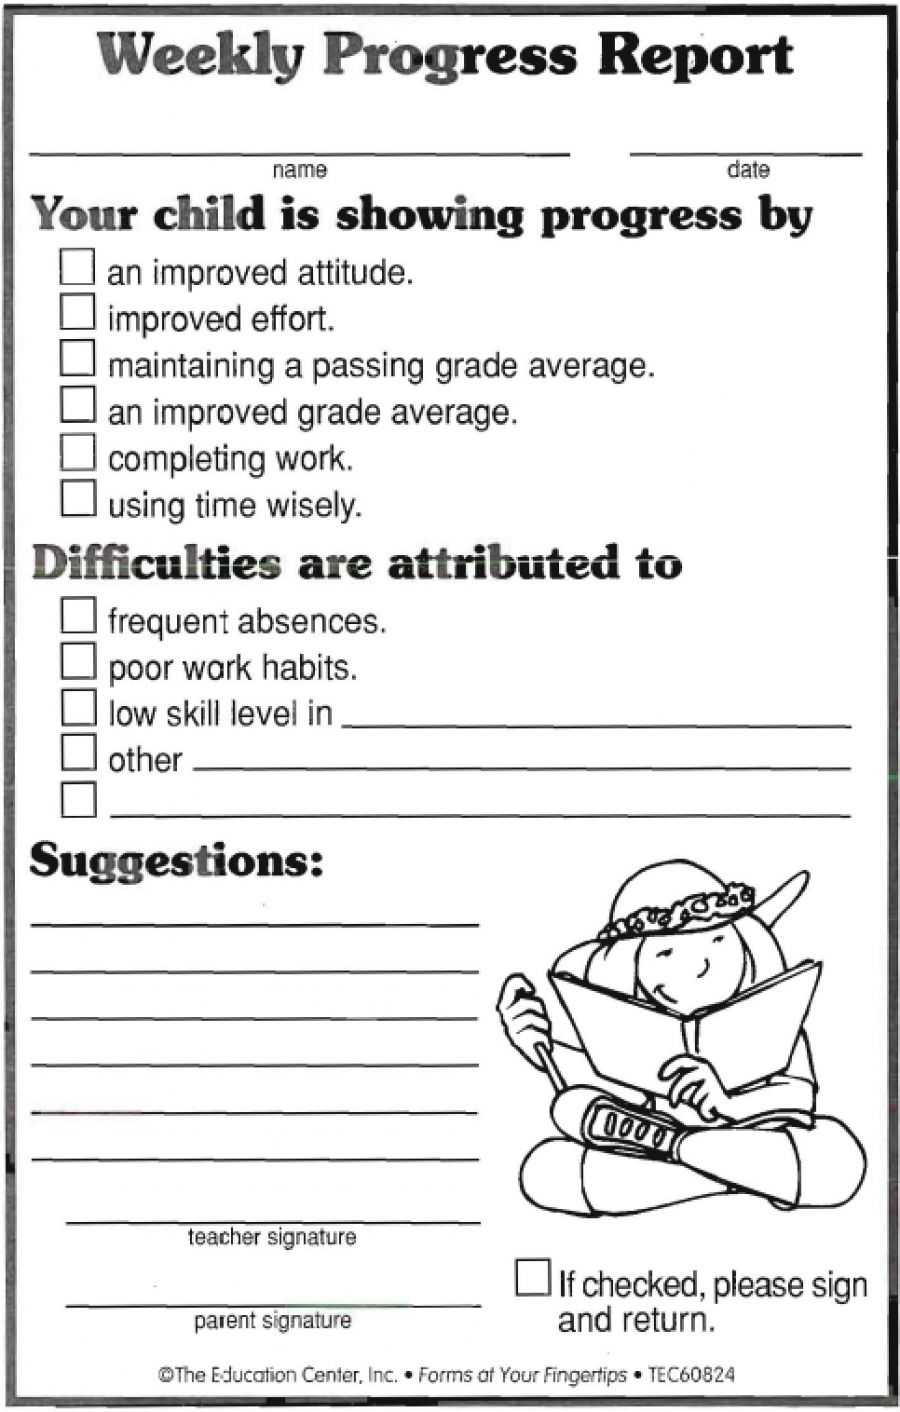 Weekly progress ideas template. Writer clipart daily report